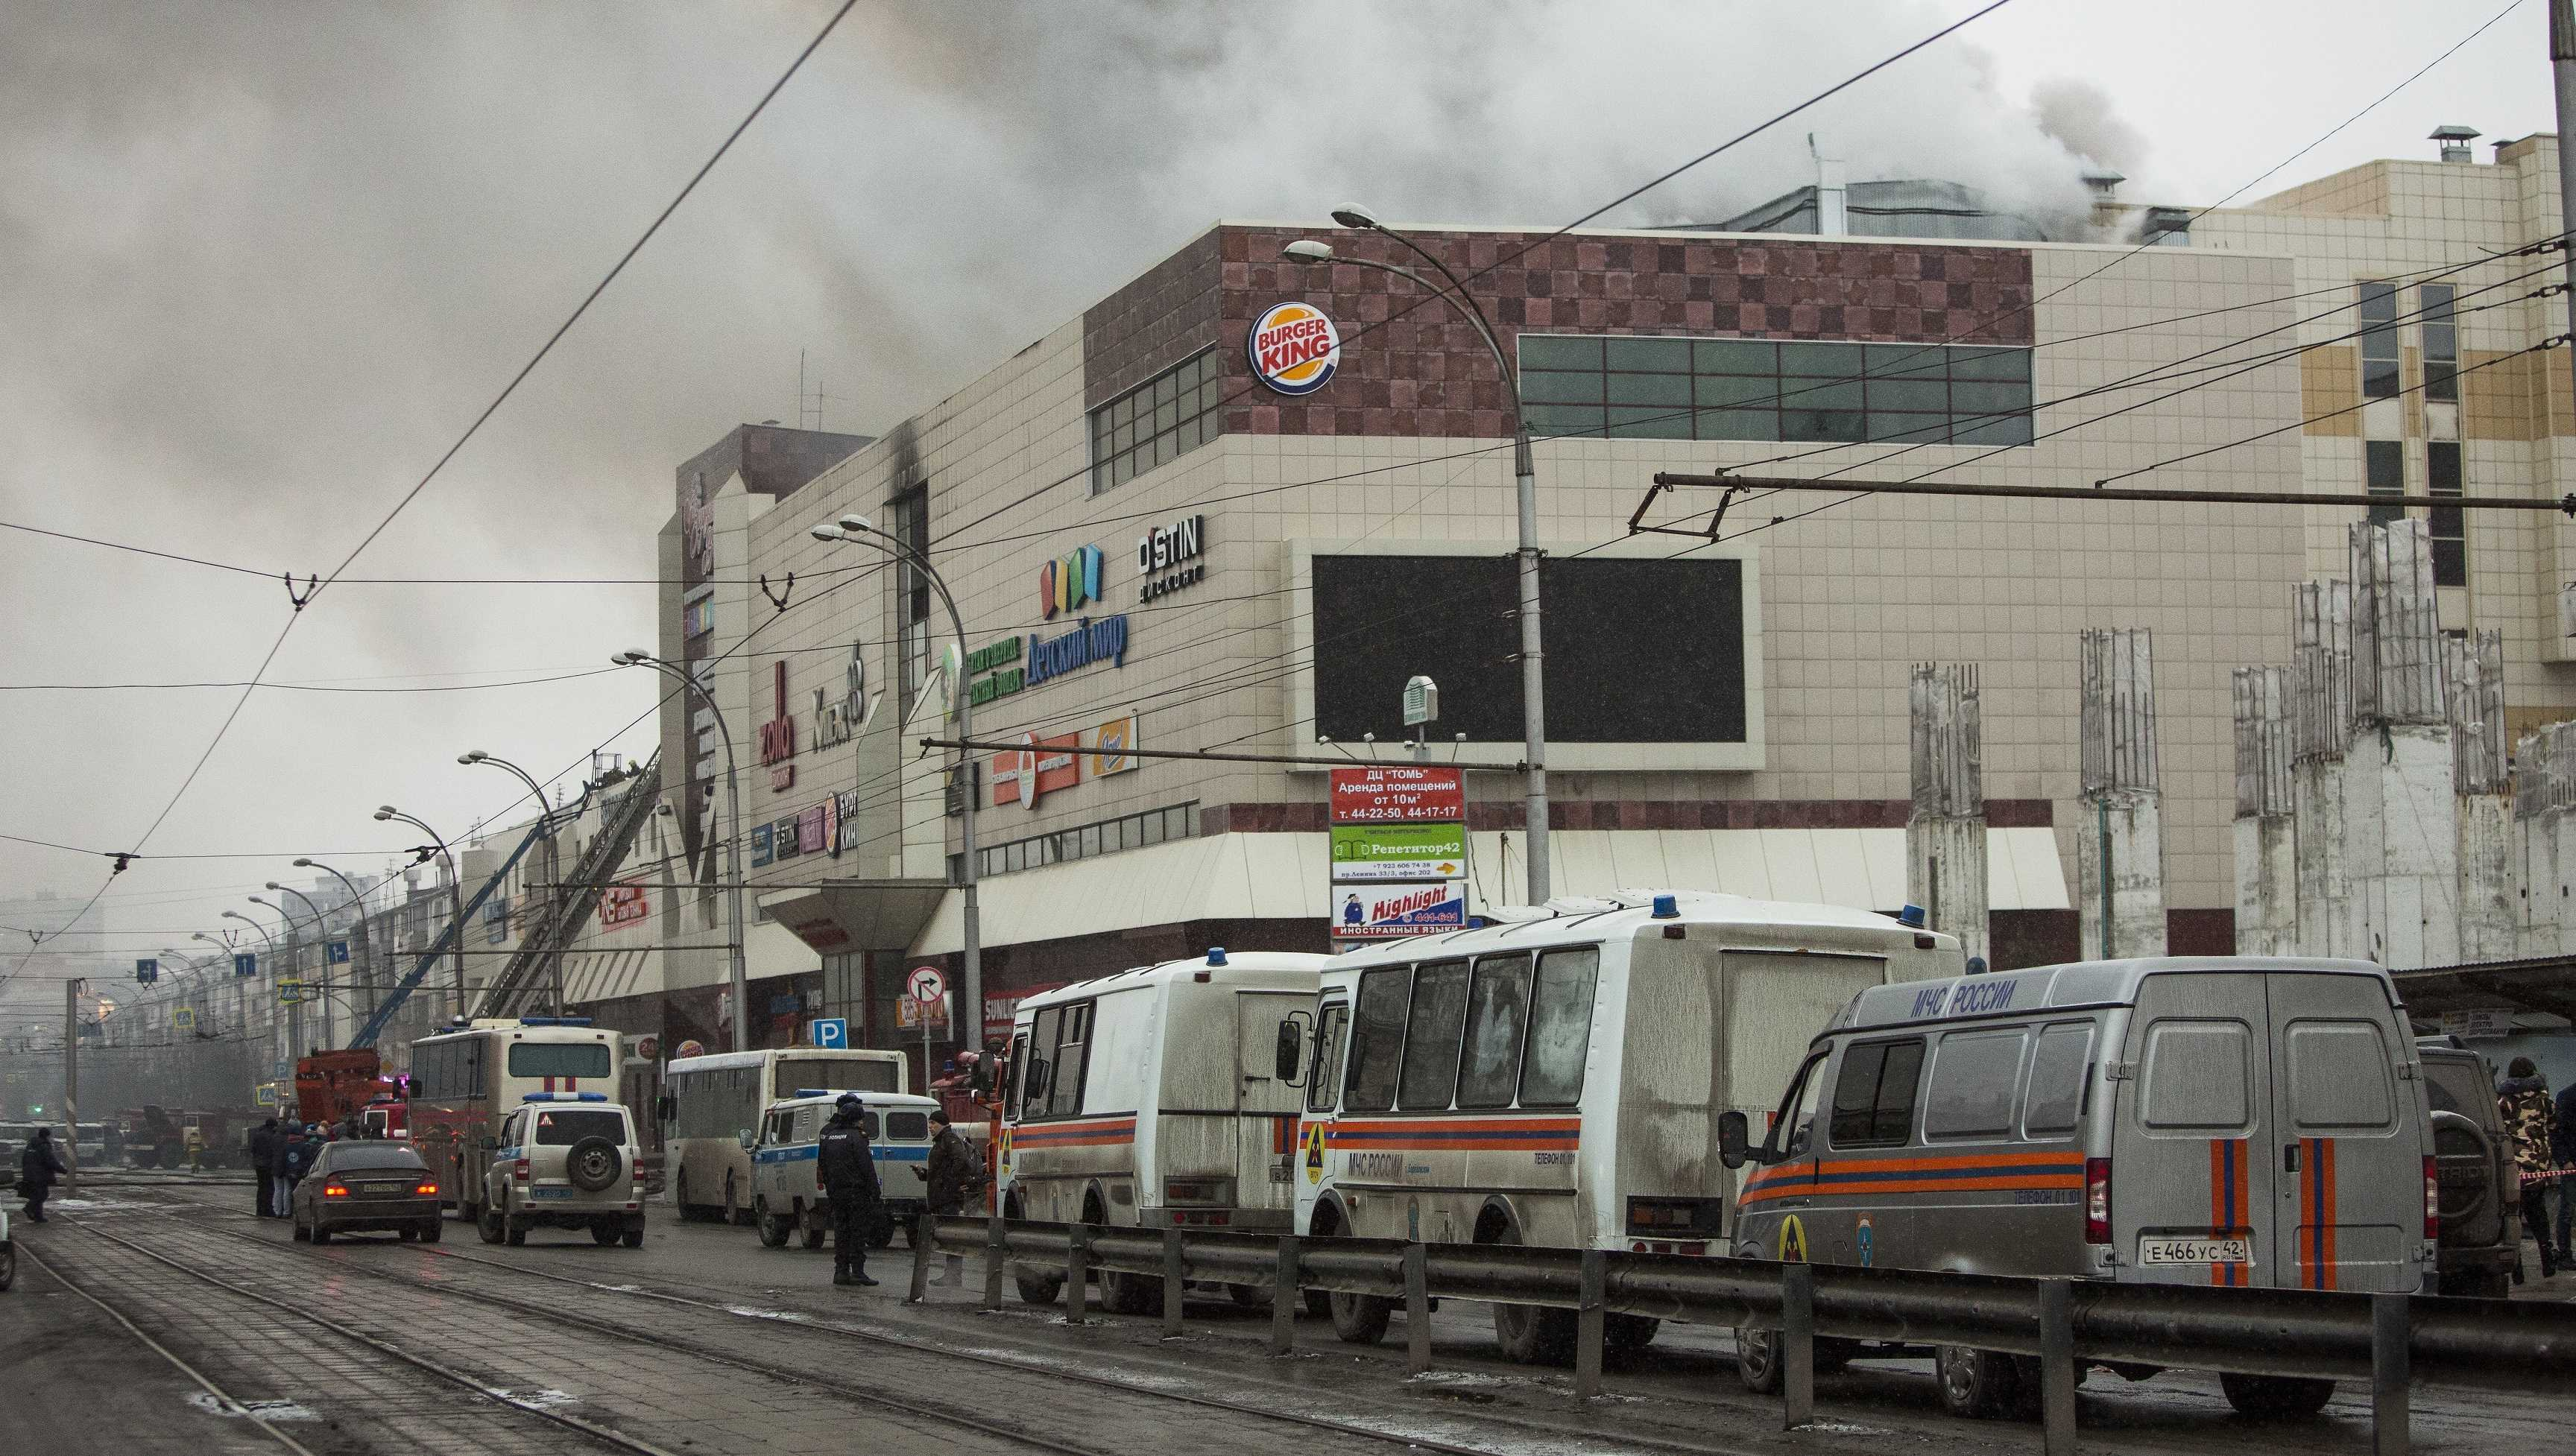 Smoke rises above a multi-story shopping center in the Siberian city of Kemerovo, about 1,900 mileseast of Moscow, Russia, on Sunday, March 25, 2018.